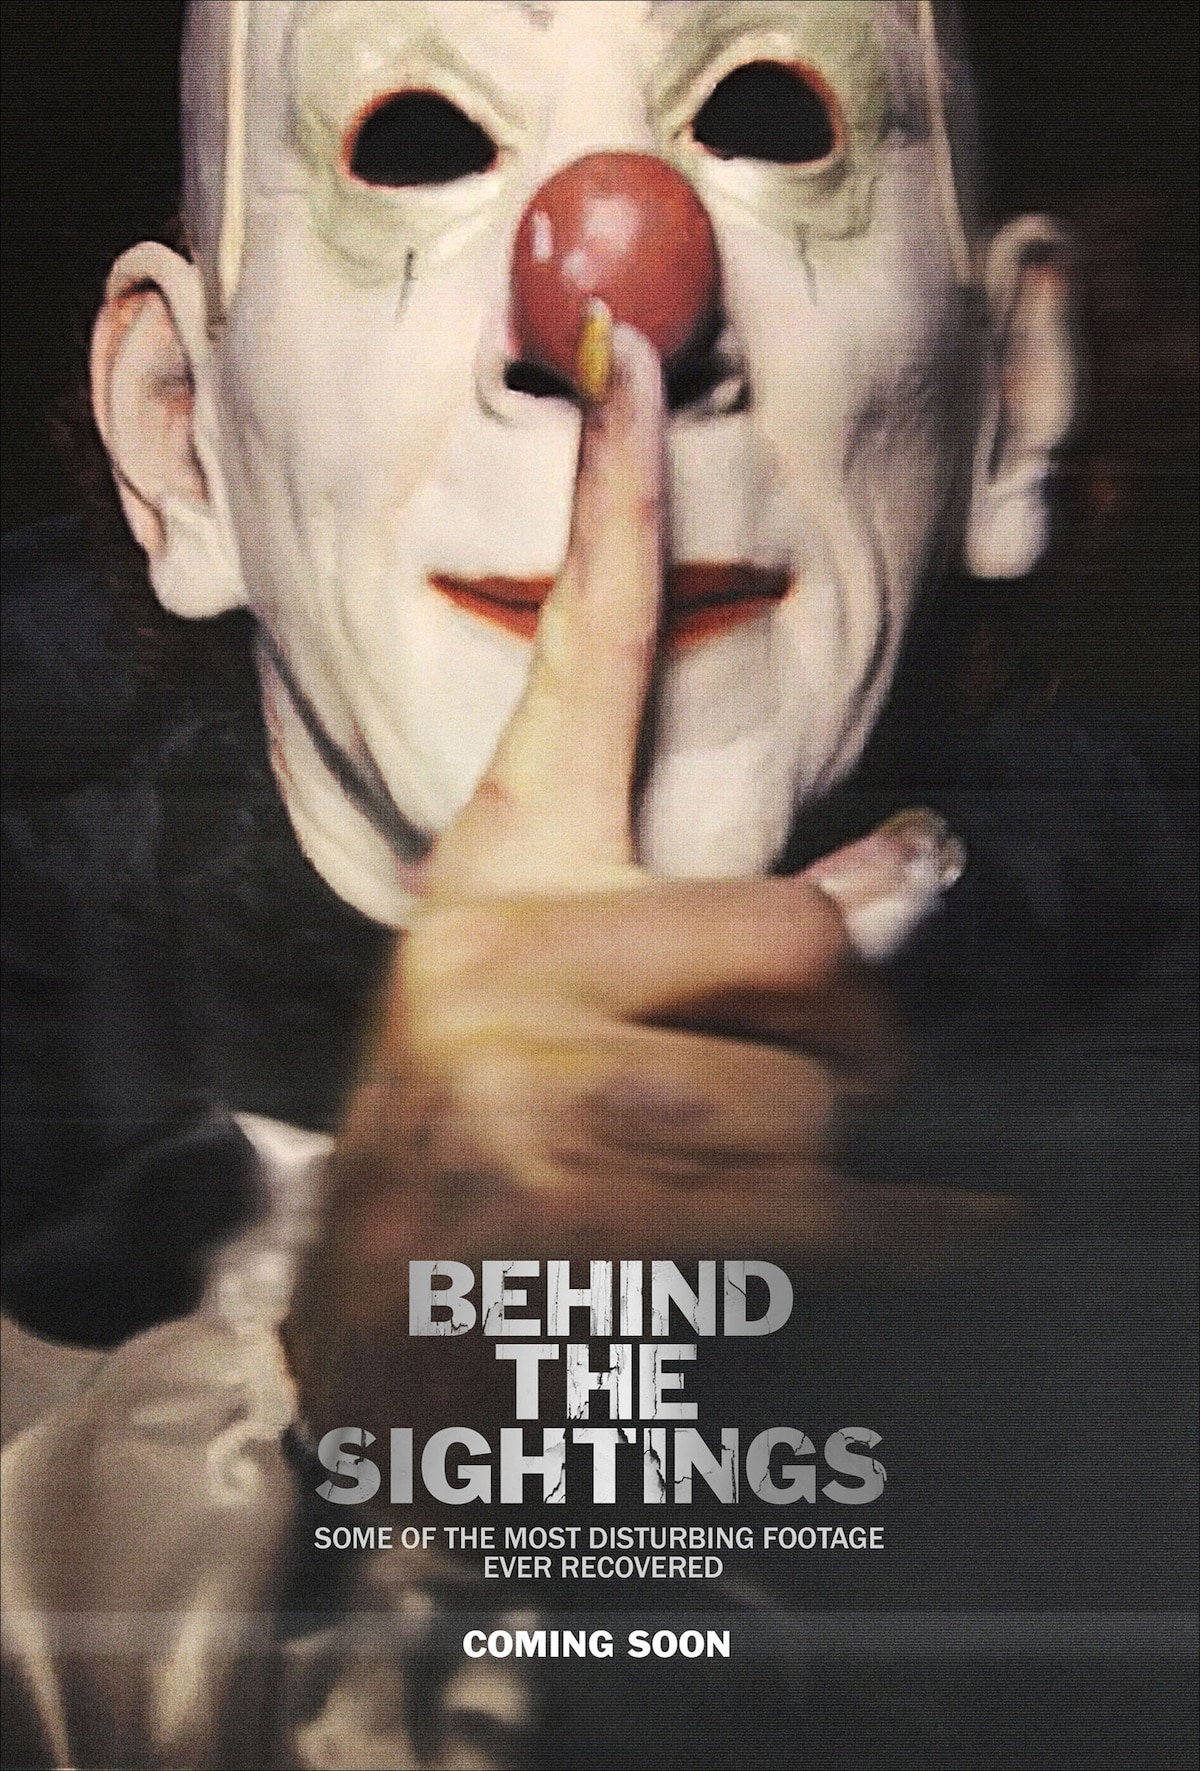 BehindTheSightings - Clown Sightings-Based Horror Film Behind the Sightings Acquired by Tommy V Films